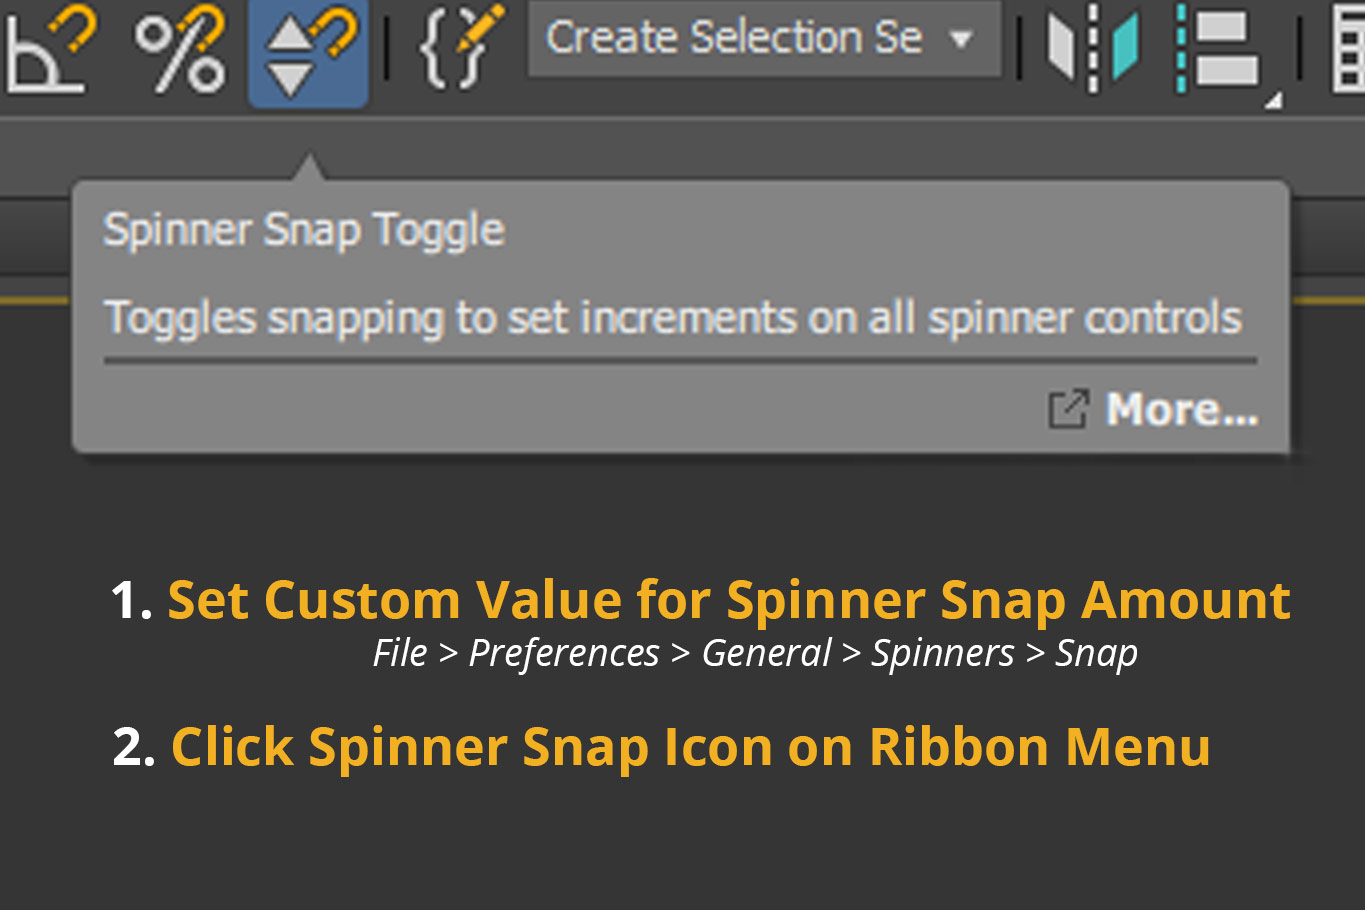 steps to enable spinner snapping